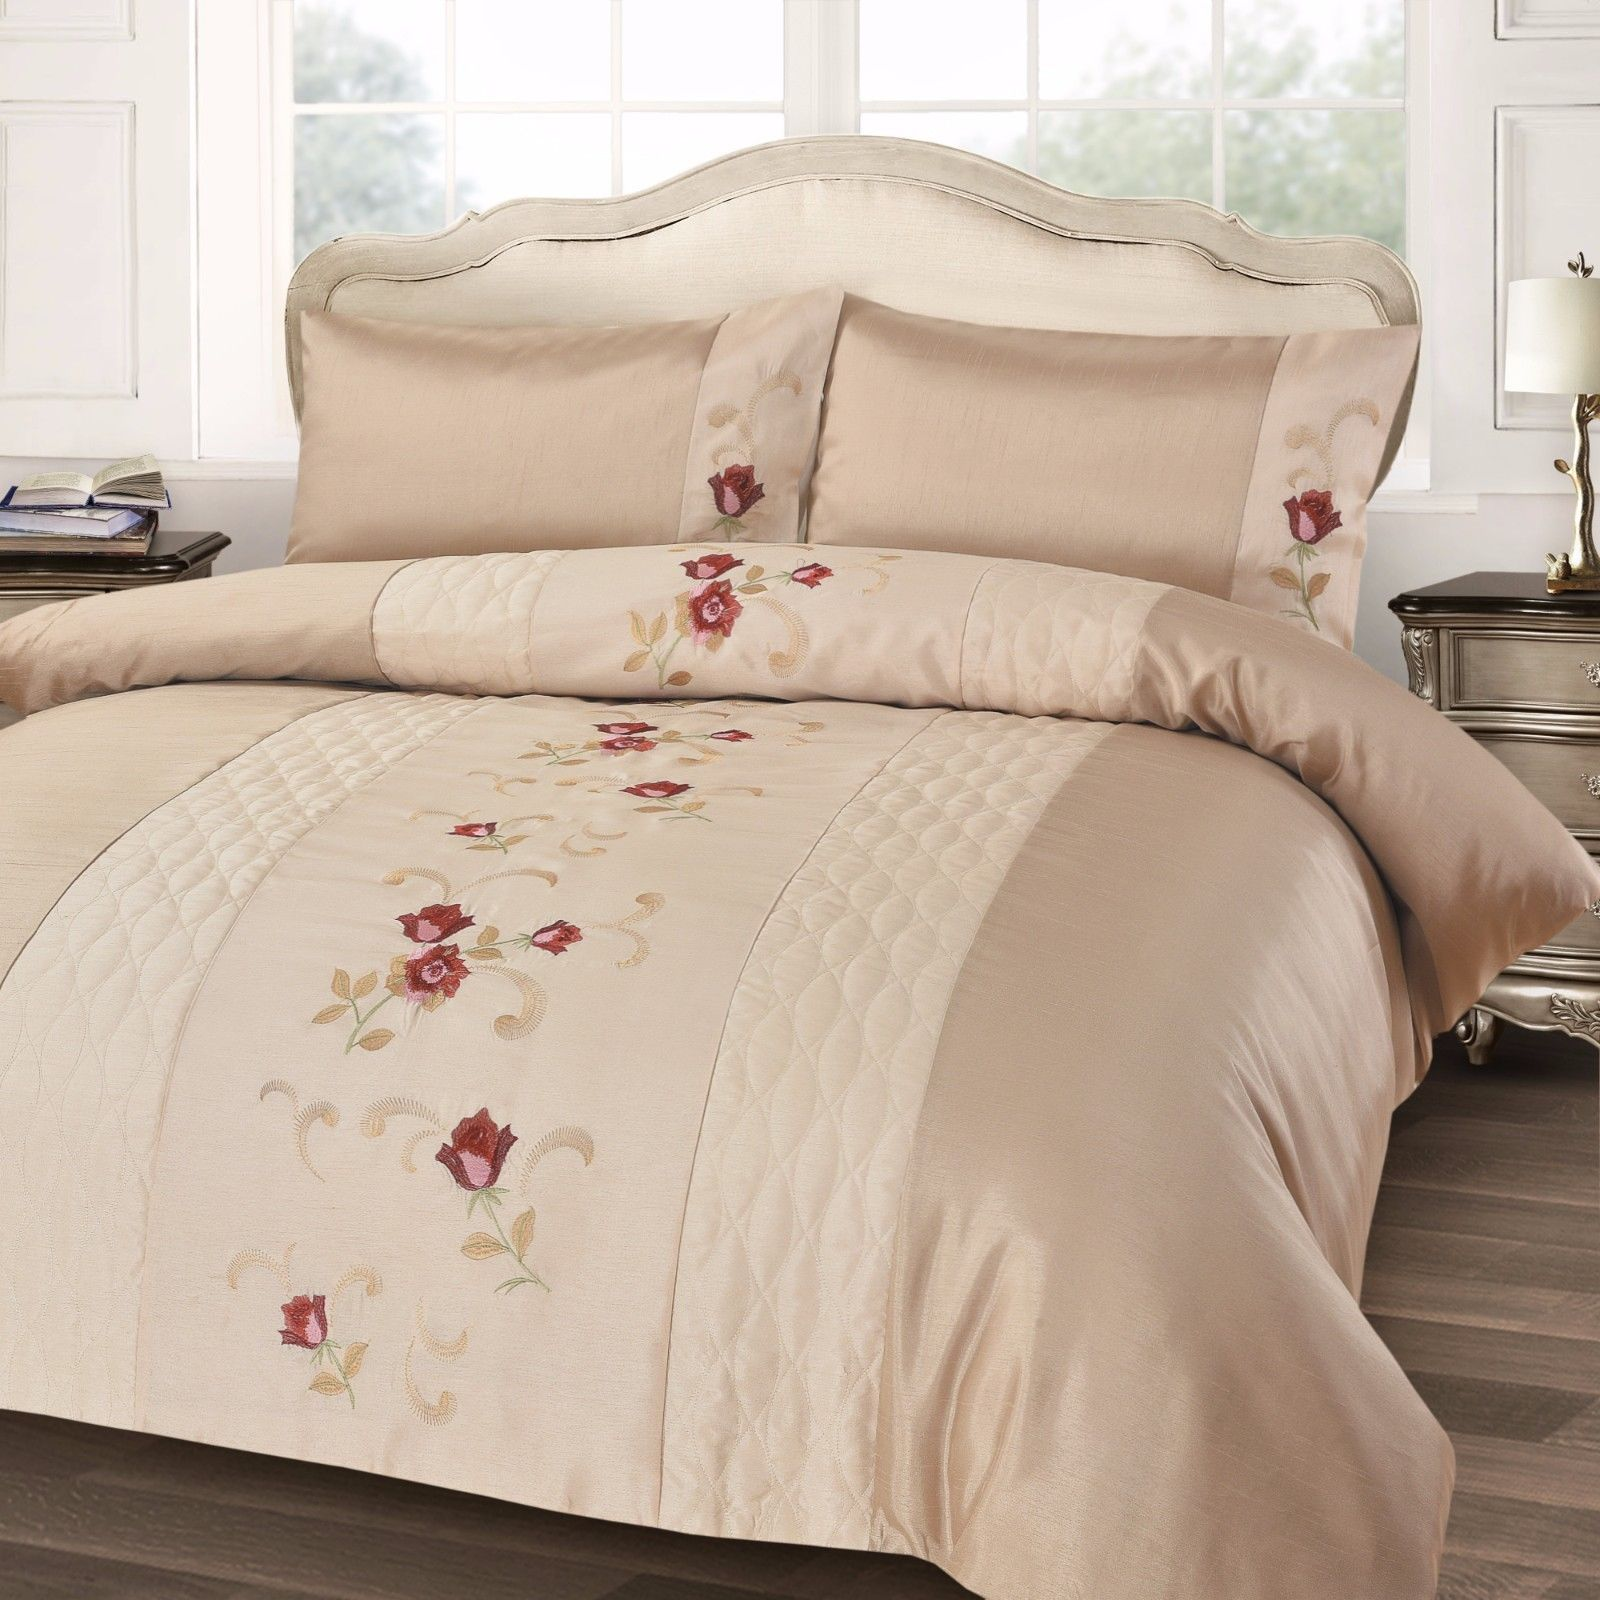 Cream Wine Stylish Floral Embroidered Duvet Cover Luxury